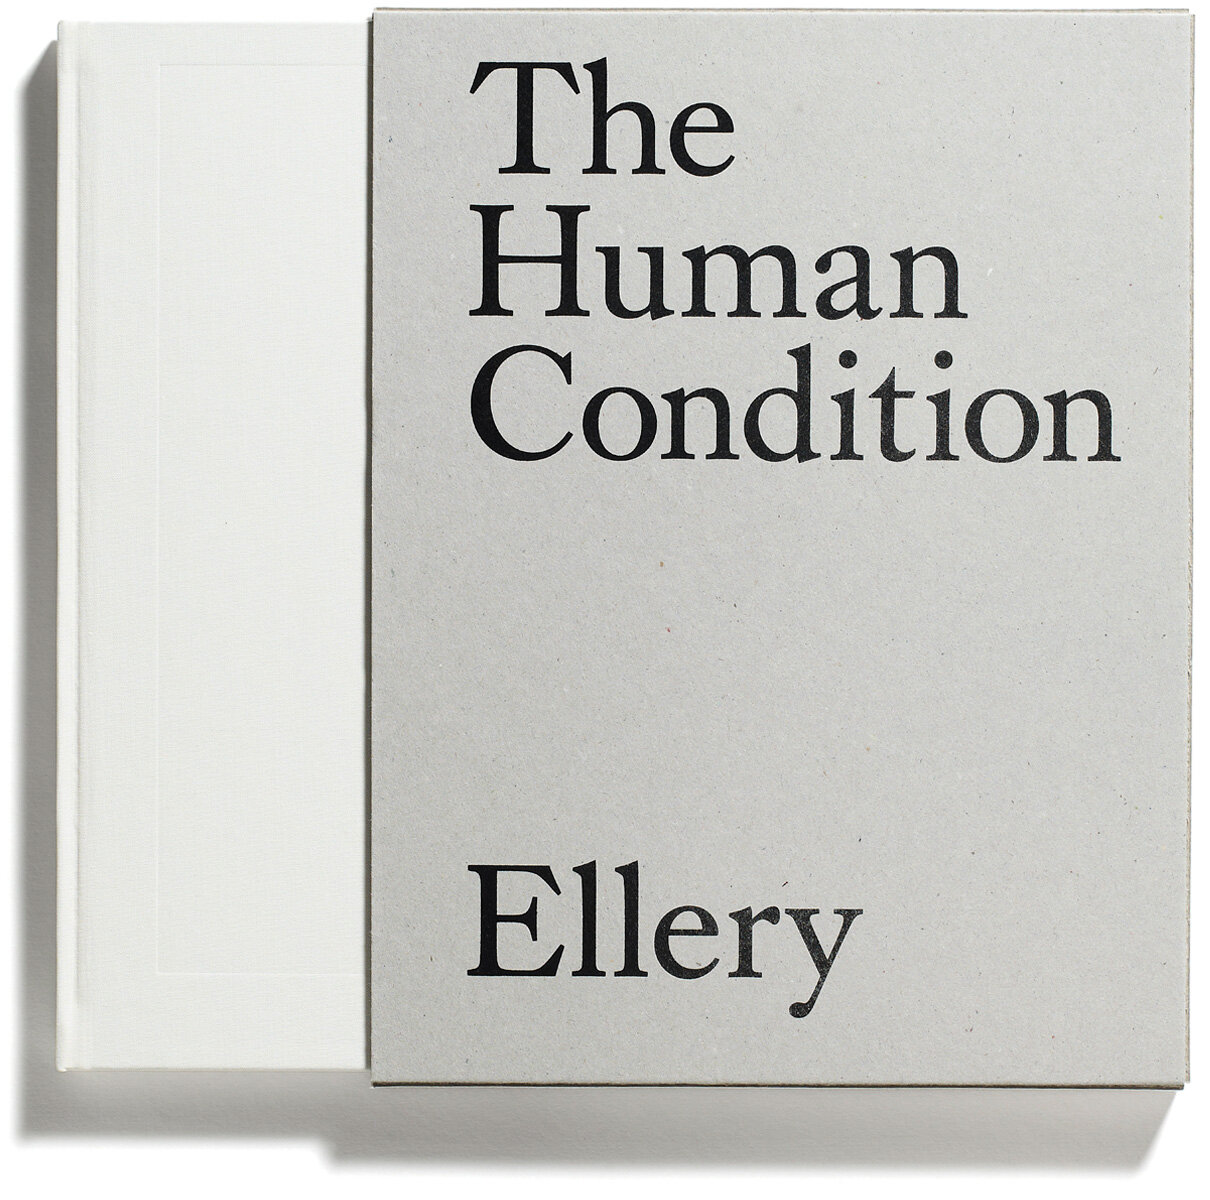 Browns-Editions-The-Human-Condition-Jonathan-Ellery-Product-Cover.jpg